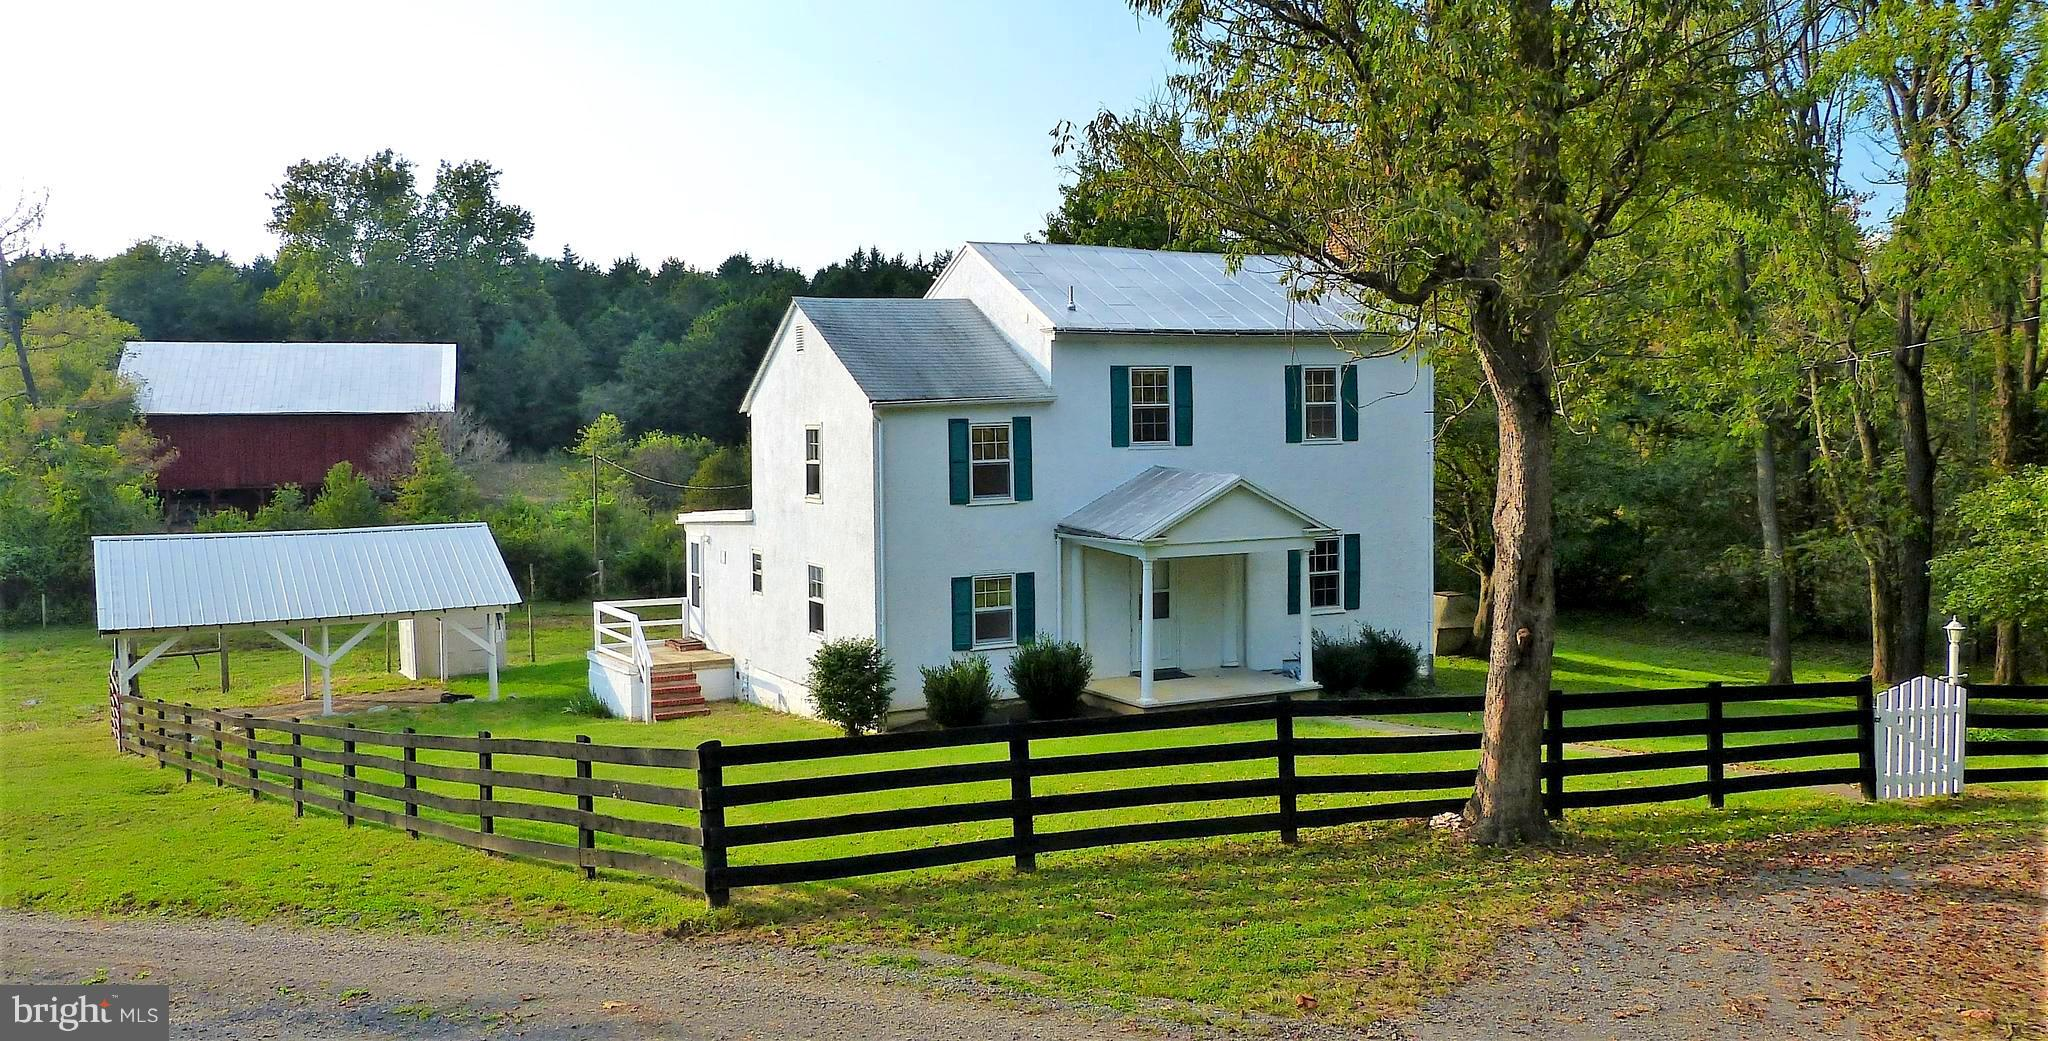 3135 ROCKLAND ROAD, FRONT ROYAL, VA 22630